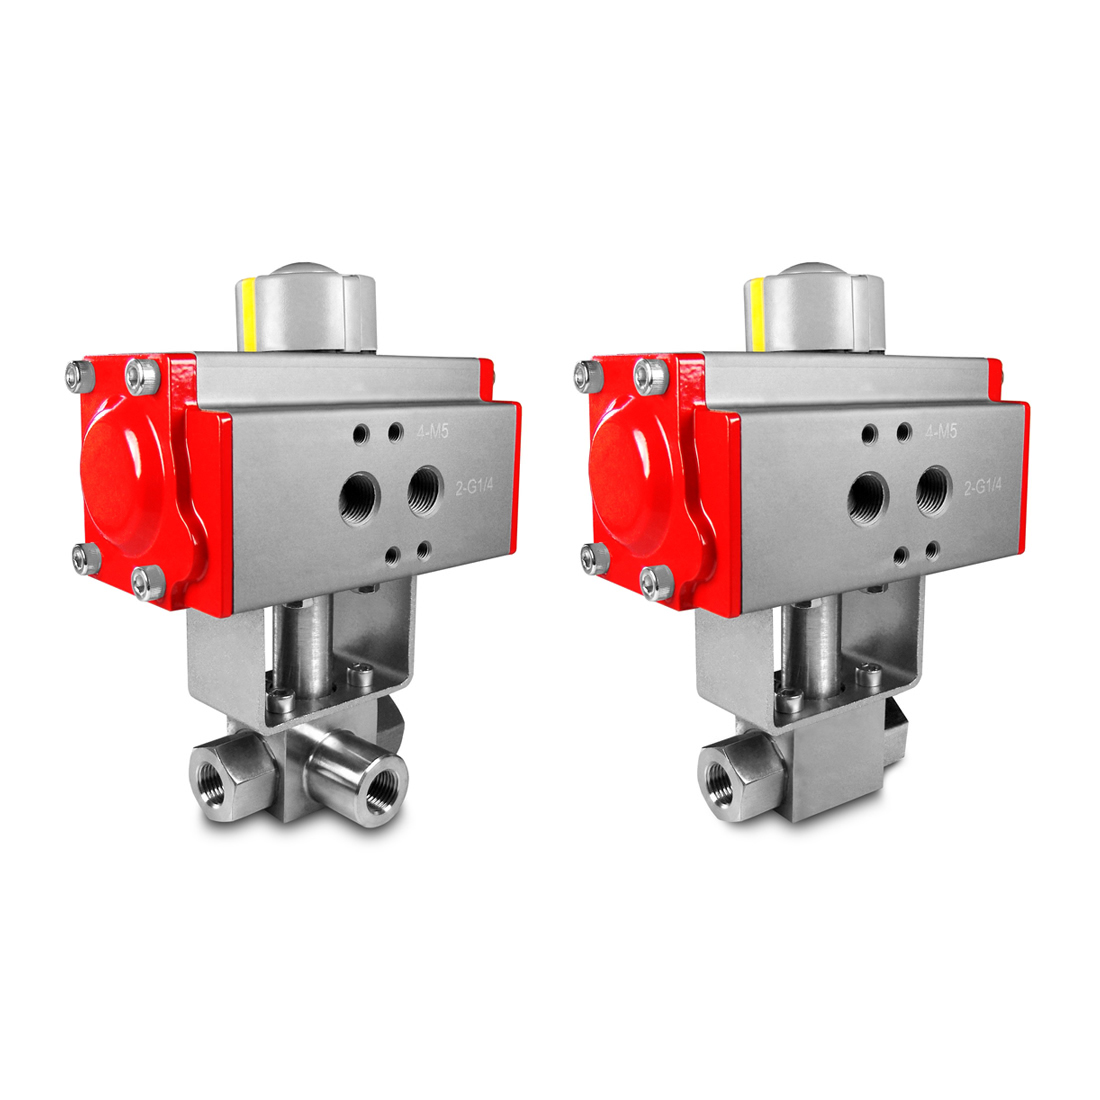 Valves with pneumatic actuator